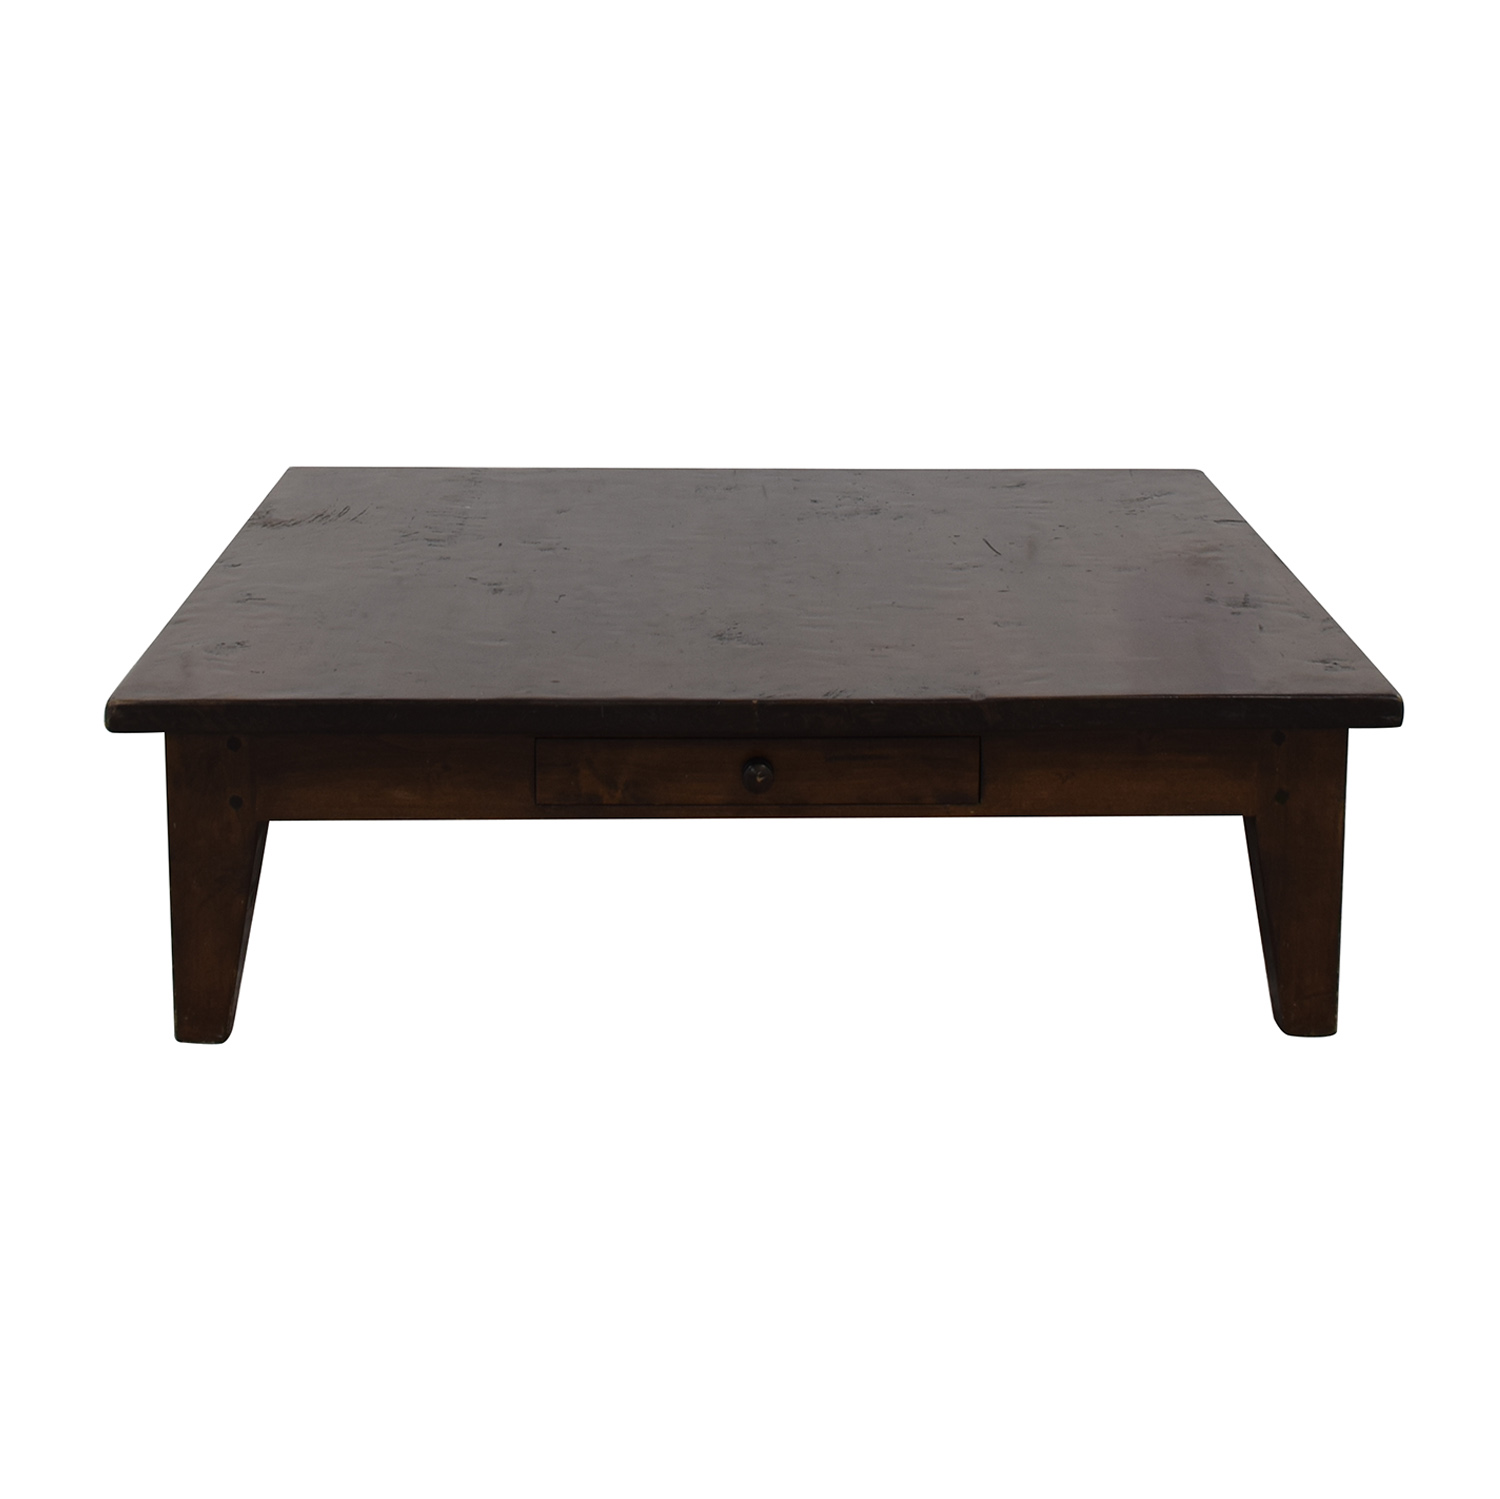 Vintage Single Drawer Low Profile Coffee Table Tables